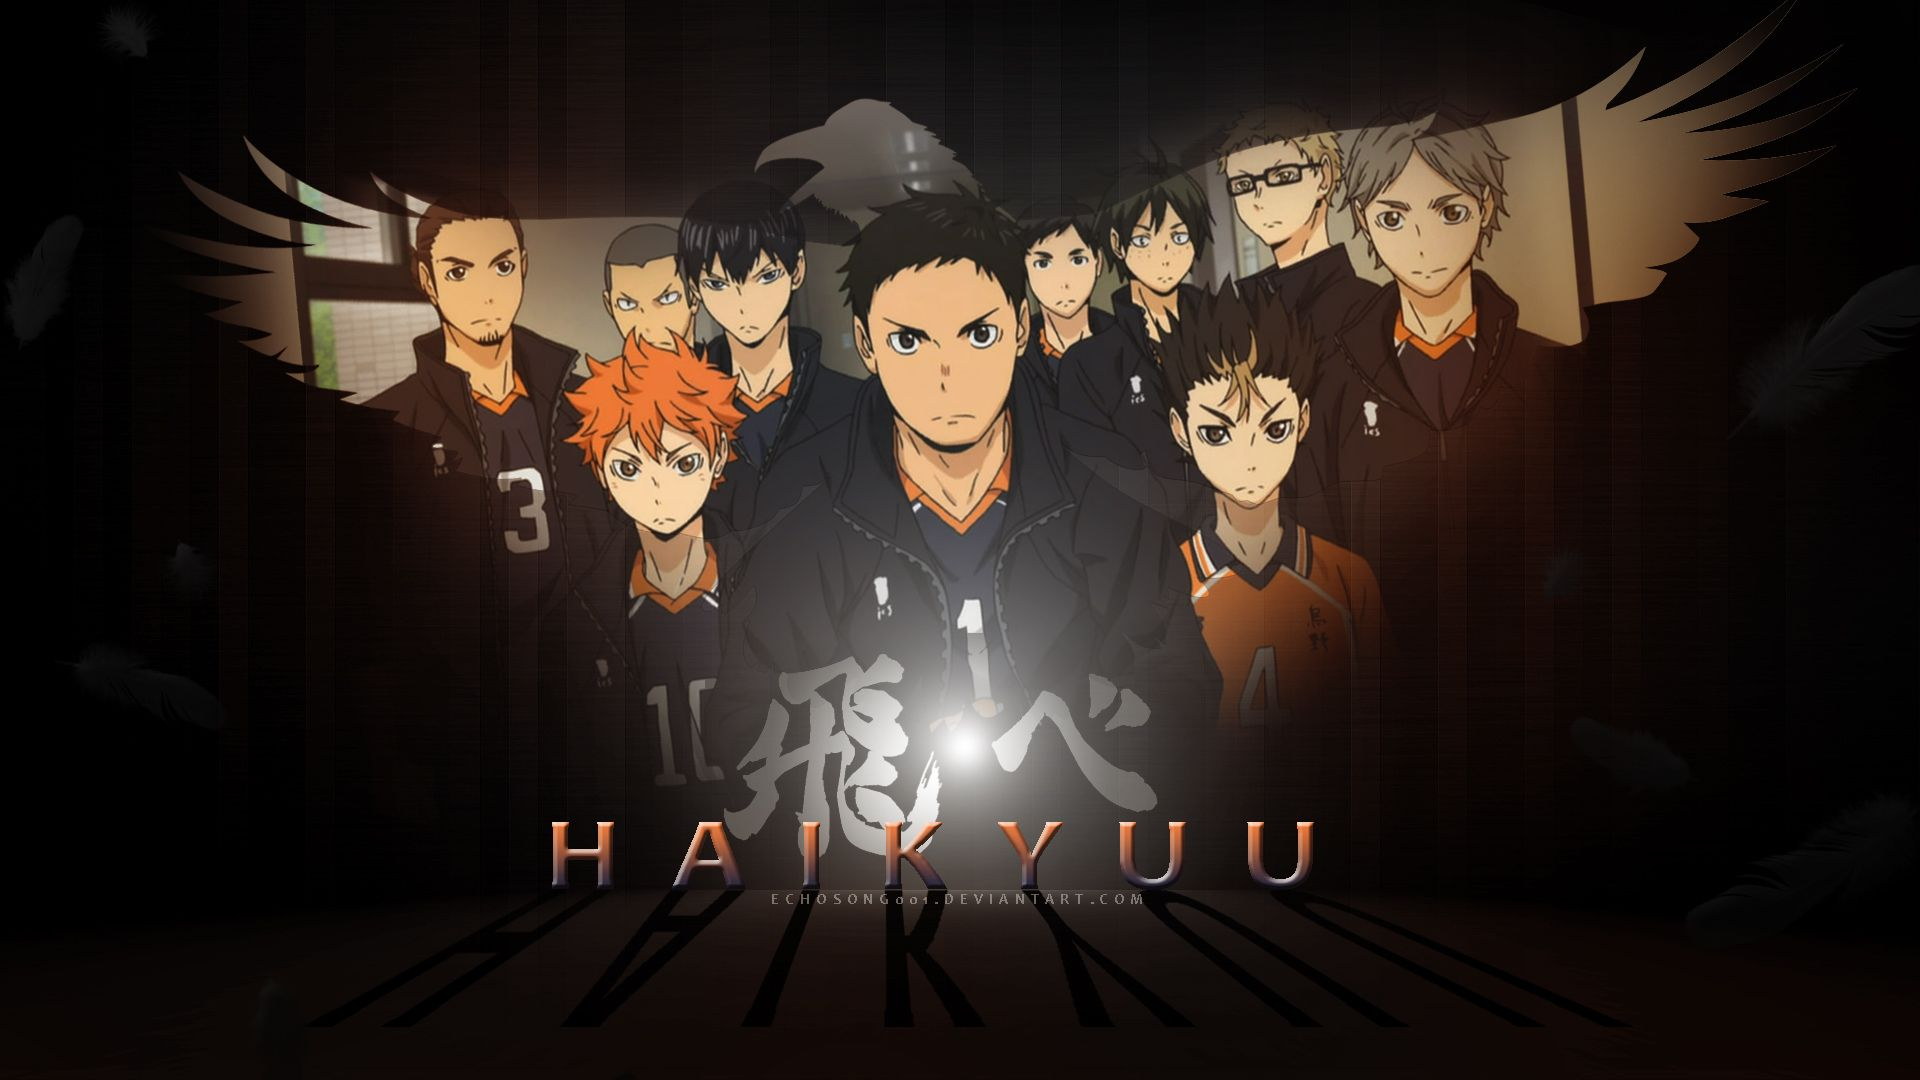 Haikyuu Wallpaper 1920x1080 Haikyuu Wallpaper Anime Wallpaper Iphone Anime Wallpaper